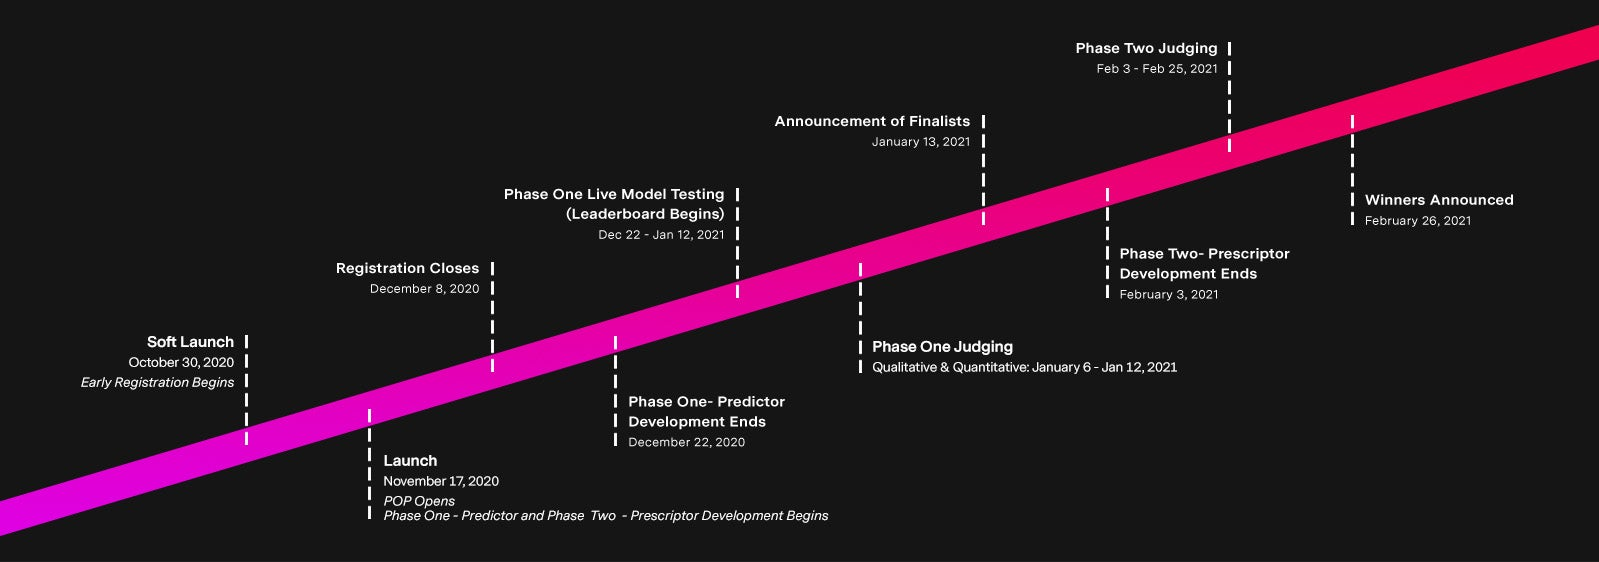 Soft launch and early registration begins - October 30th 2020. Launch, prize operations portal opens, phase one predictor, phase two prescriptor development begins - November 17th 2020. Registration closes - December 8th 2020. Phase one, predictor, development ends - December 22nd 2020. Phase one live model testing, leaderboard begins - December 22nd 2020 to January 12th 2021. Phase one judging, qualitative and quantitative - January 6th to 12th 2021. Announcement of finalists - January 13th 2021. Phase two, prescriptor development ends - February 3rd 2021. Phase two judging - February 3rd to 26th 2021. Winners announced - February 26th 2021.